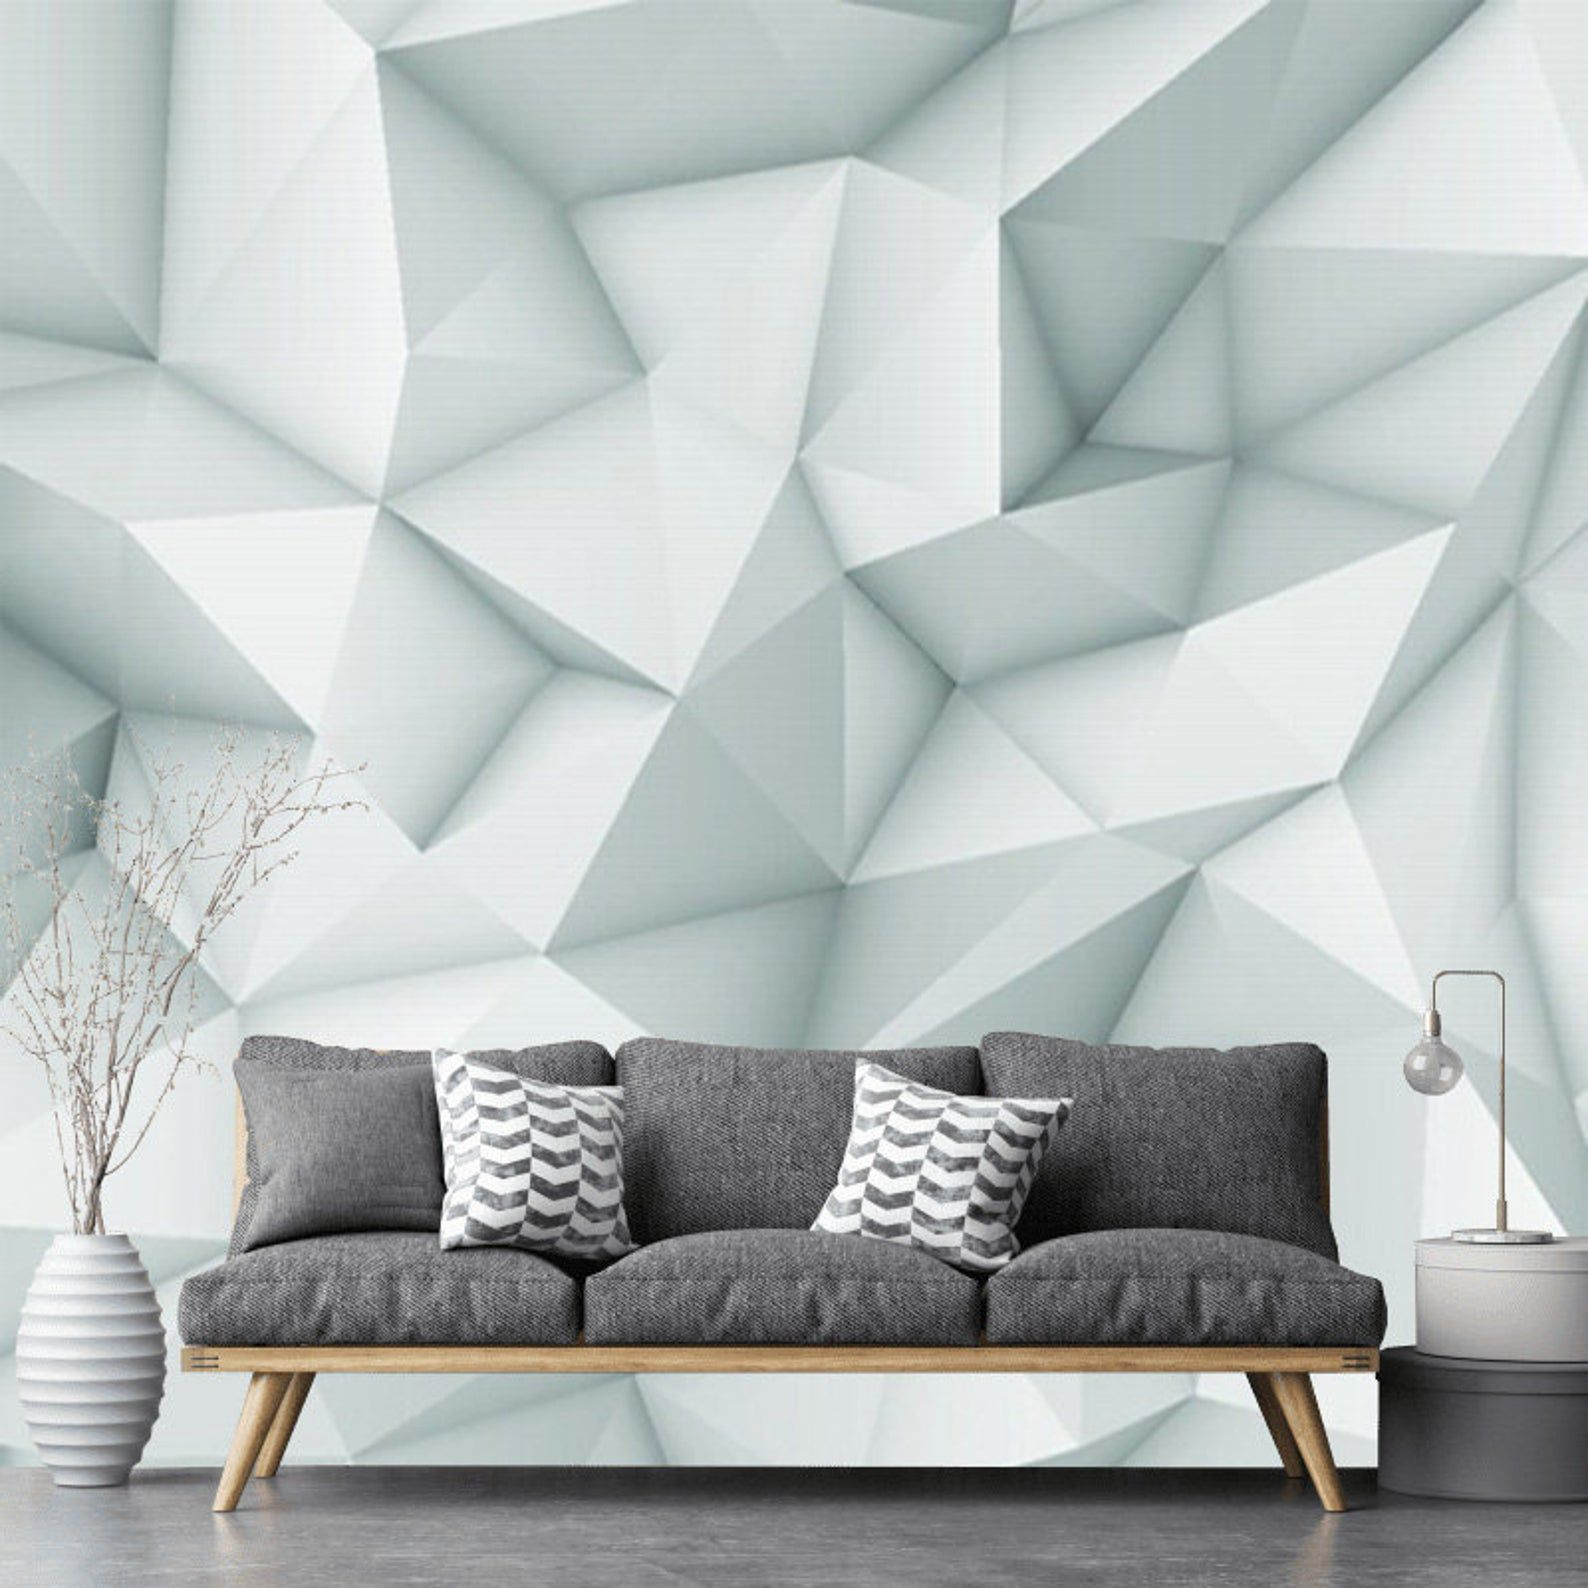 Modern Removable Geometric 3d Wallpaper Mural Peel And Stick Etsy 3d Wallpaper Mural Accent Wall Modern Wallpaper Accent Wall